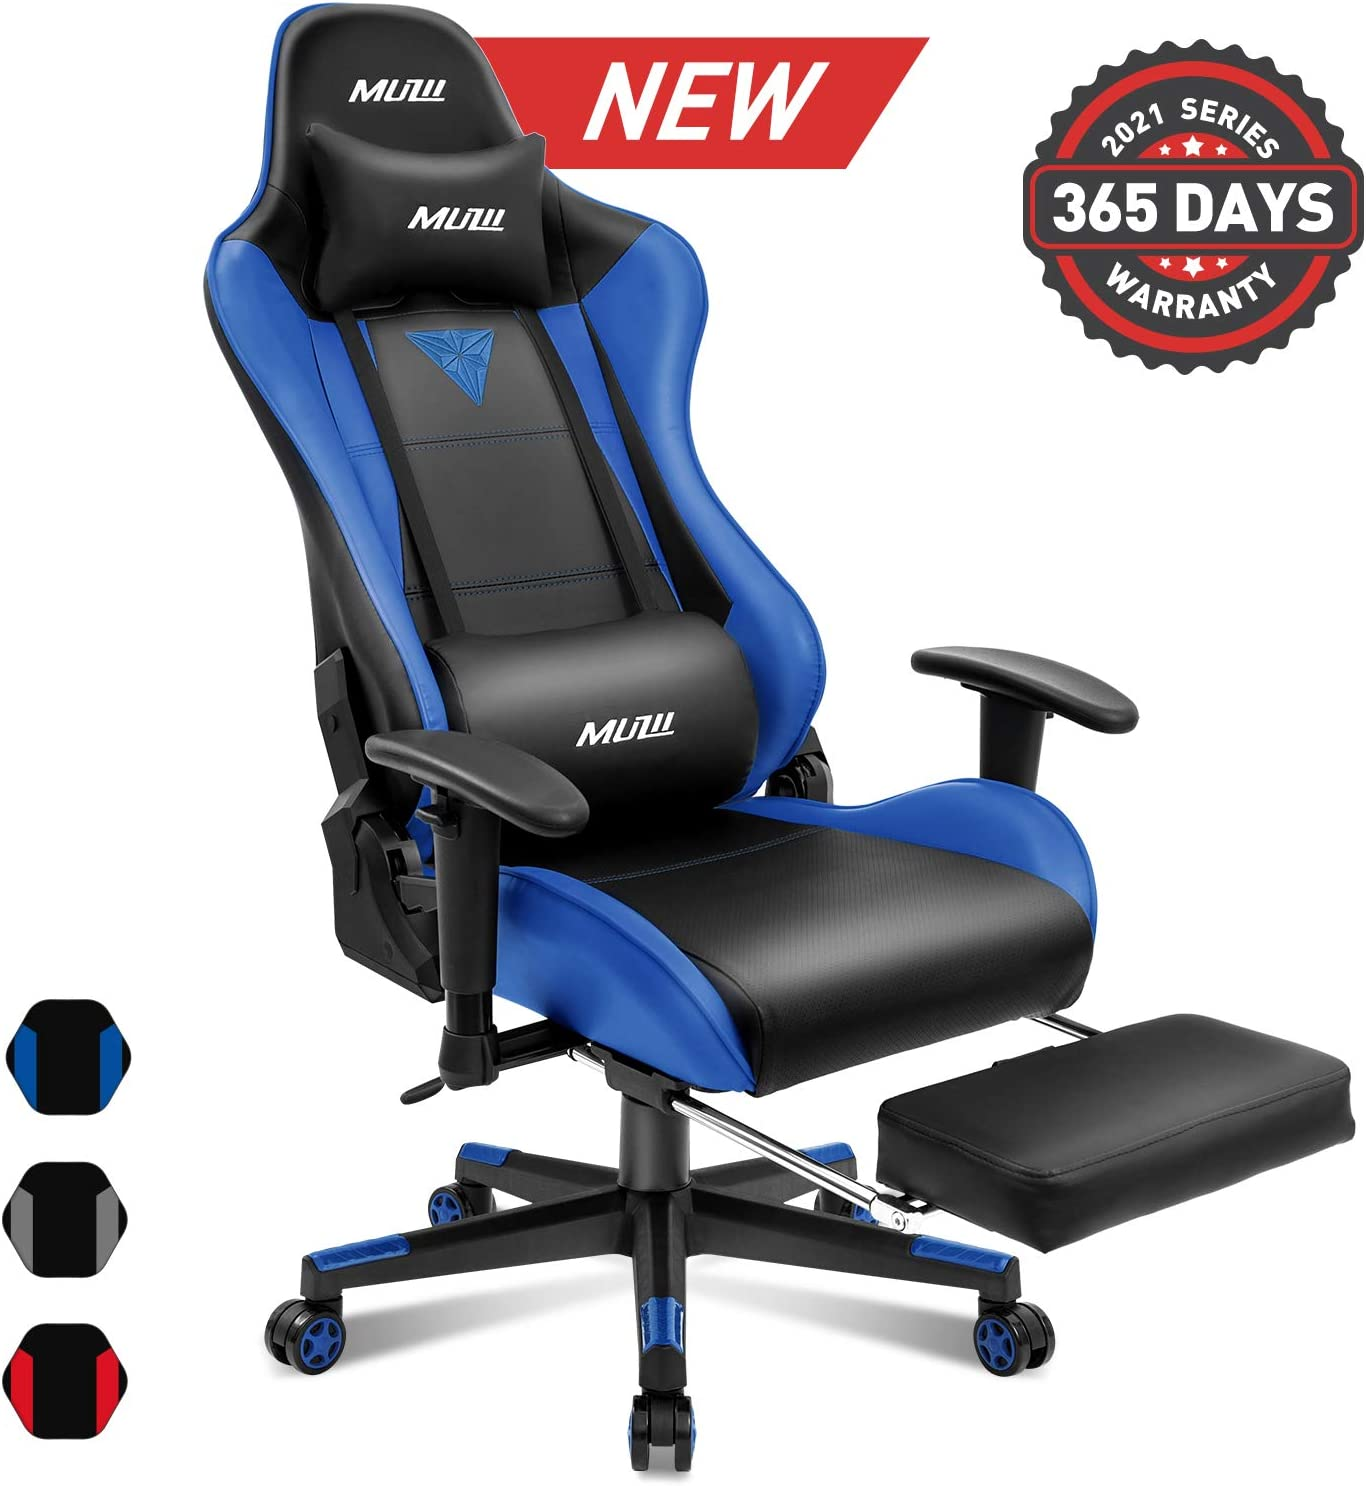 Muzii Gaming Chair with Footrest, High-Back PU Leather Office Chair with Headrest and Adjustable Lumbar Support,Ergonomic Computer Swivel Chair for Teens and Adults-Blue(001)